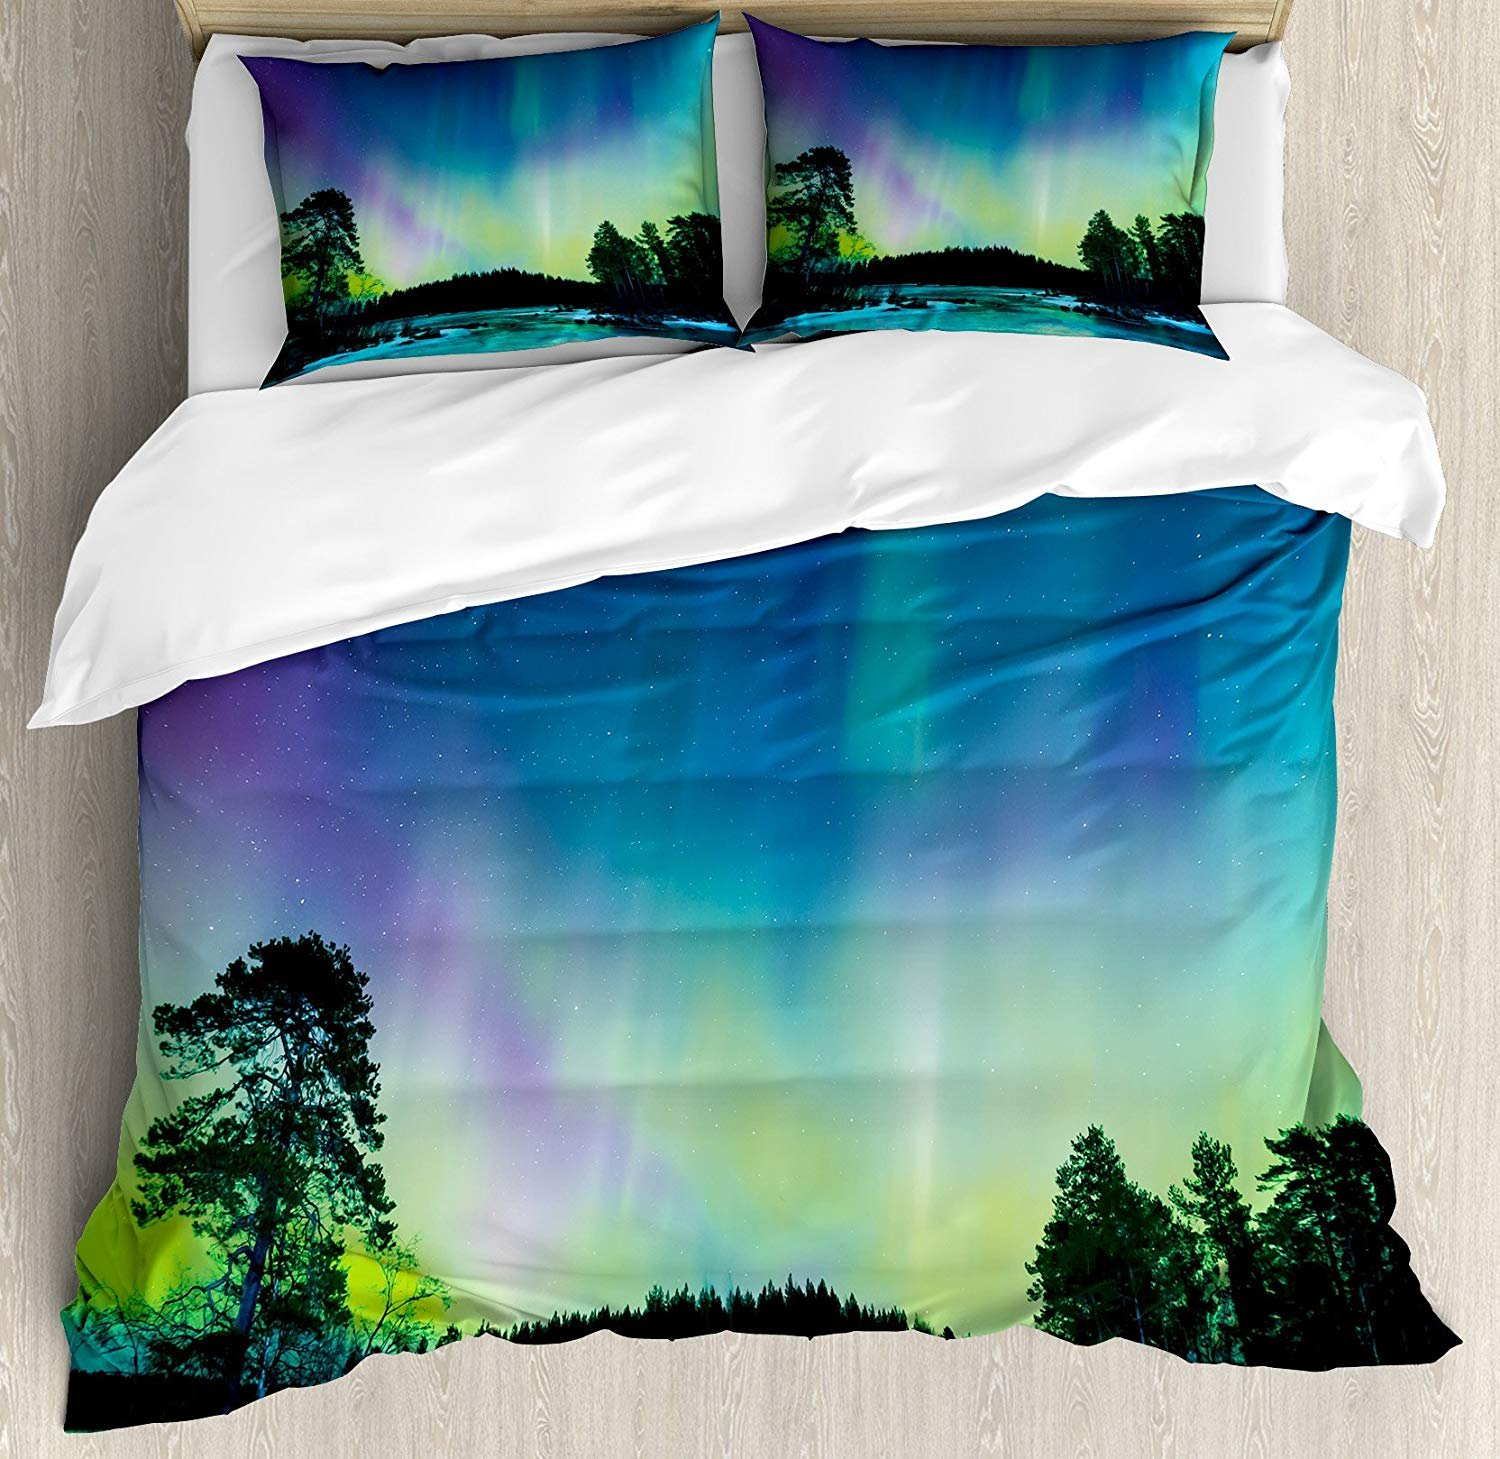 Family Decor Aurora Borealis Twin Duvet Cover Sets 4 Piece Bedding Set Bedspread with 2 Pillow Sham, Flat Sheet for Adult/Kids/Teens, Sky over Lake Surrounded Forest Woods Hemisphere Print